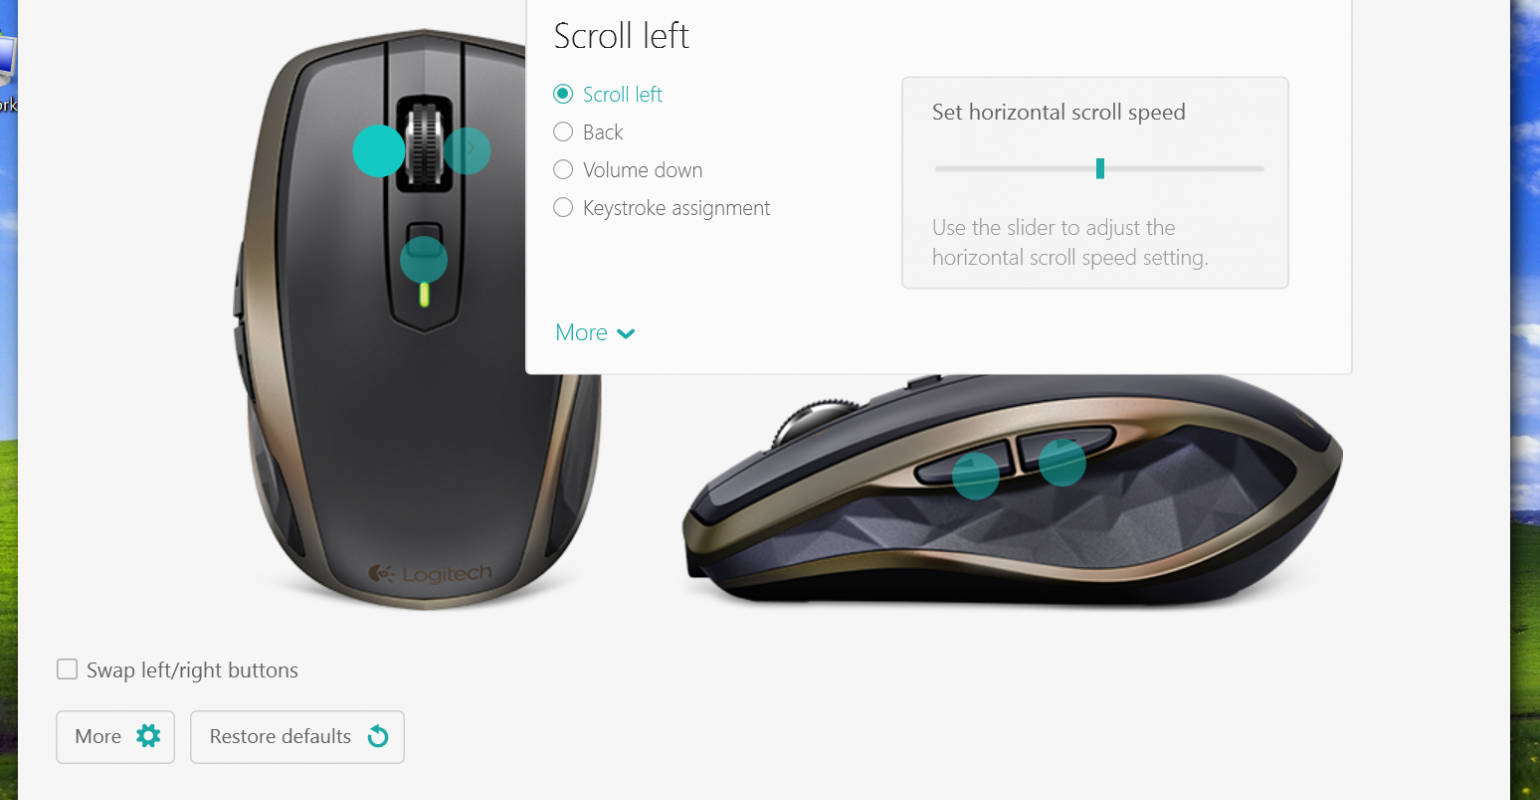 Gallery: Logitech Options Software for MX Anywhere 2